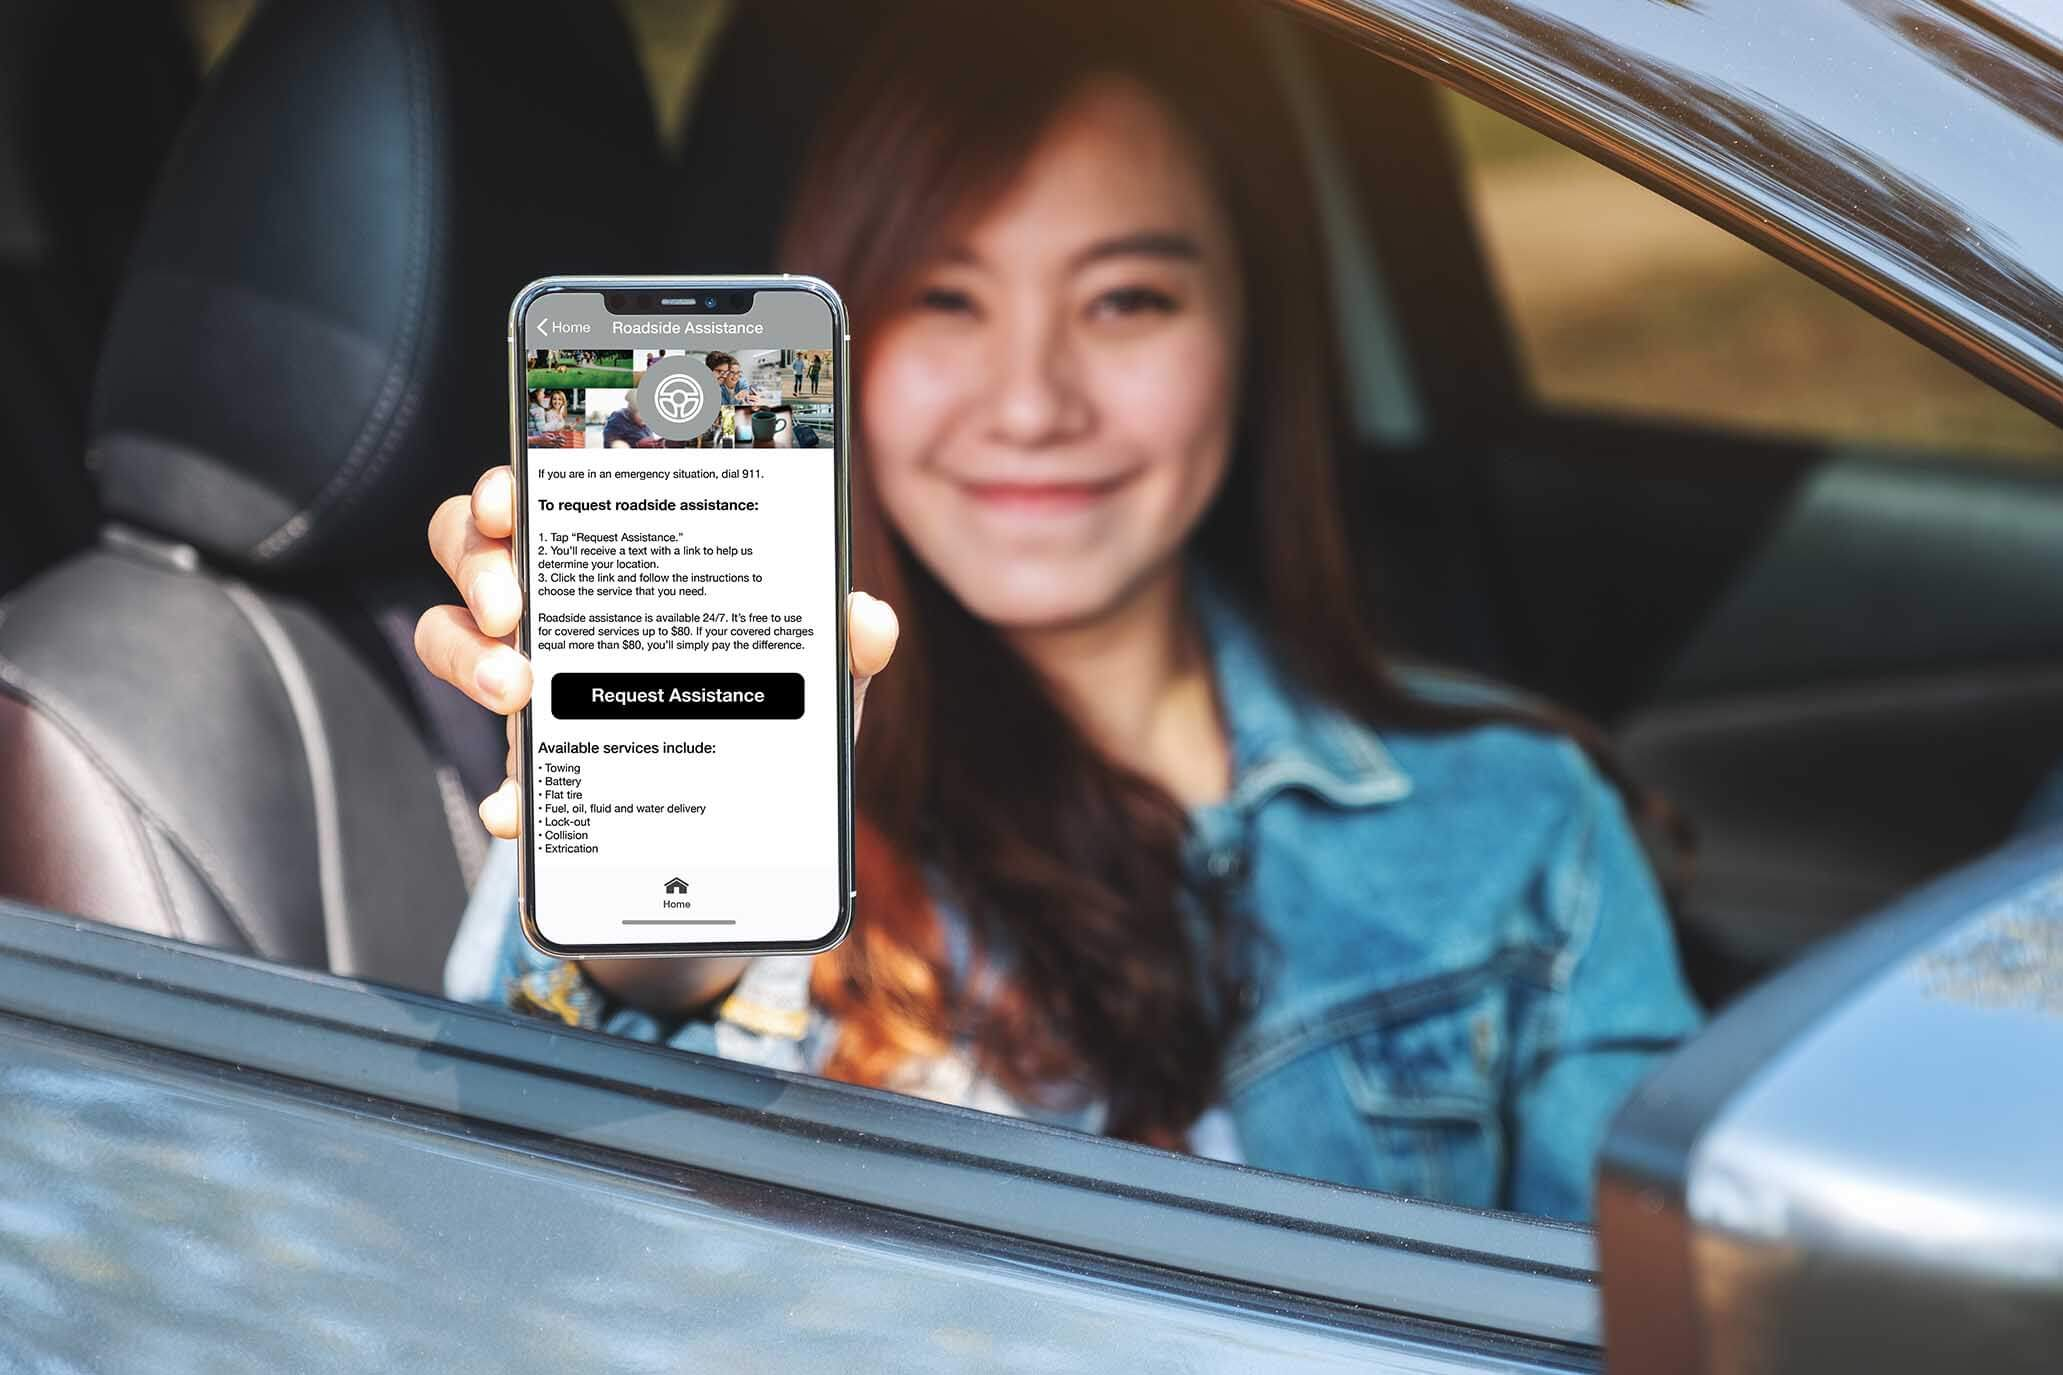 Call for roadside assistance from the app or phone